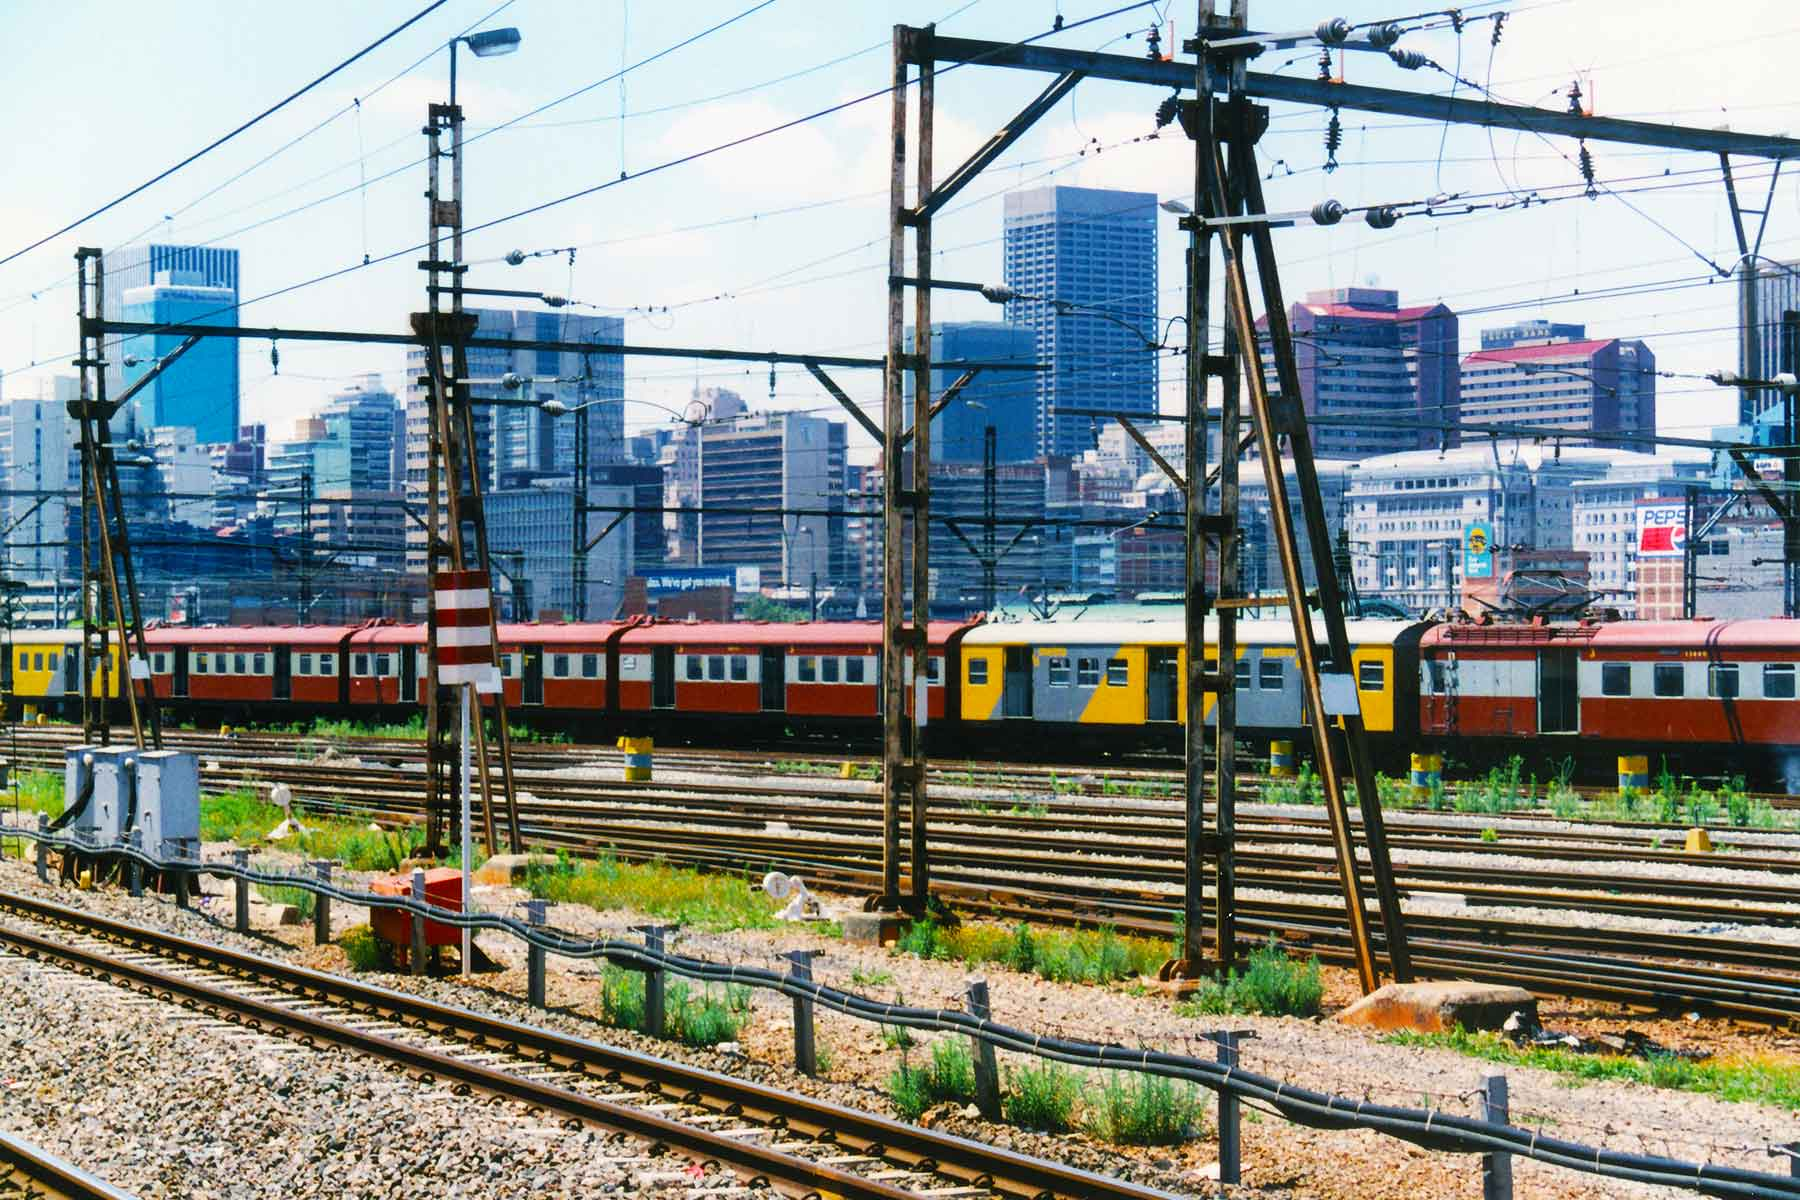 Cape Town train station - Steven Andrew Martin PhD - South Africa Photo Journal